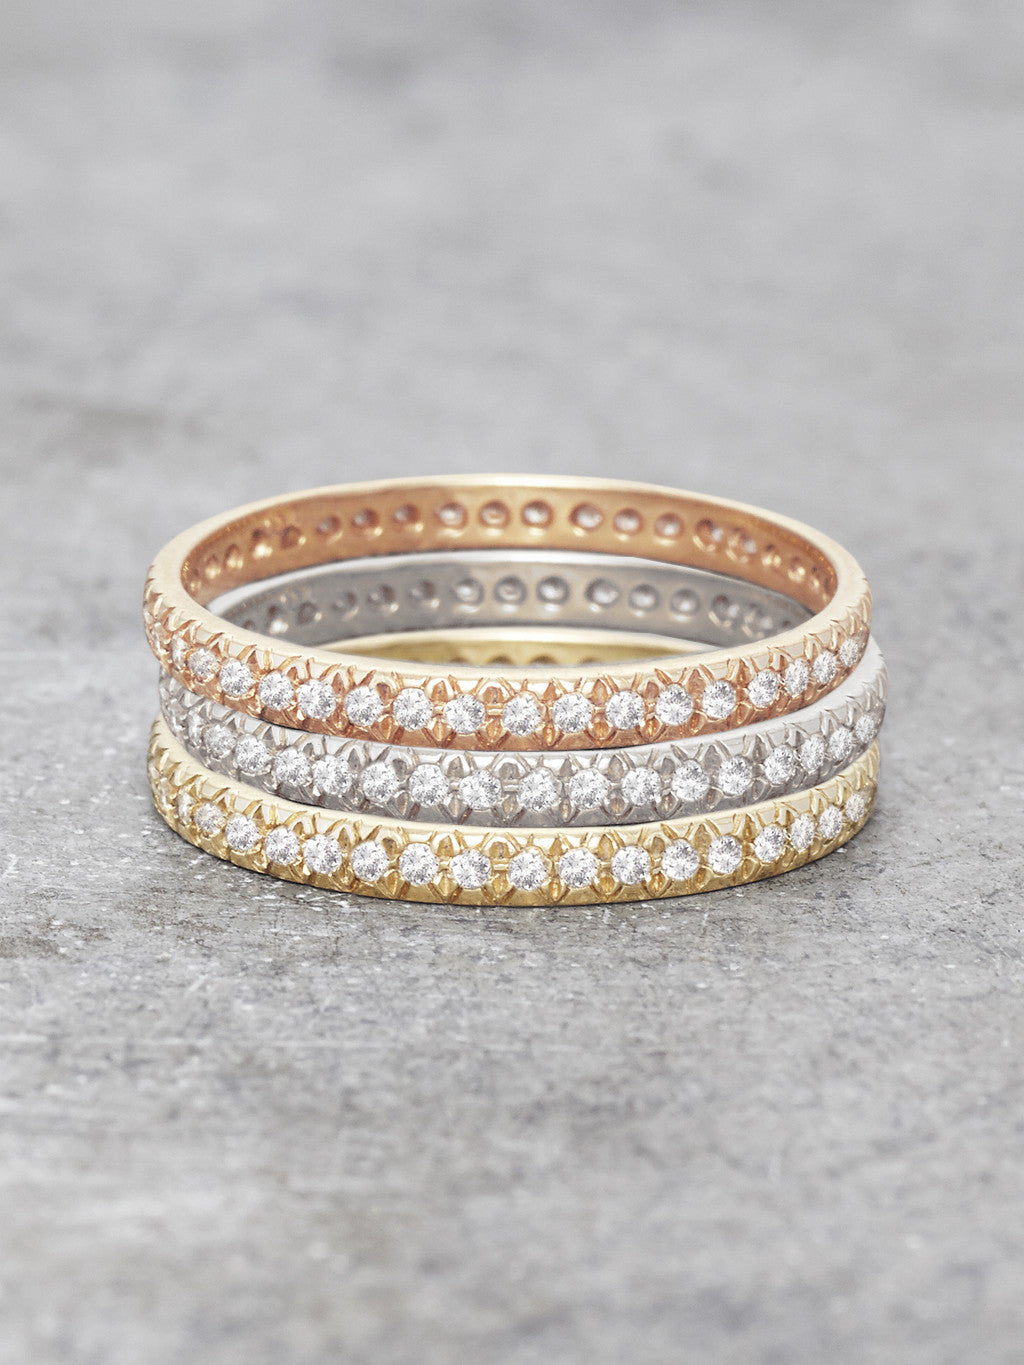 Antique Pave Diamond Rings